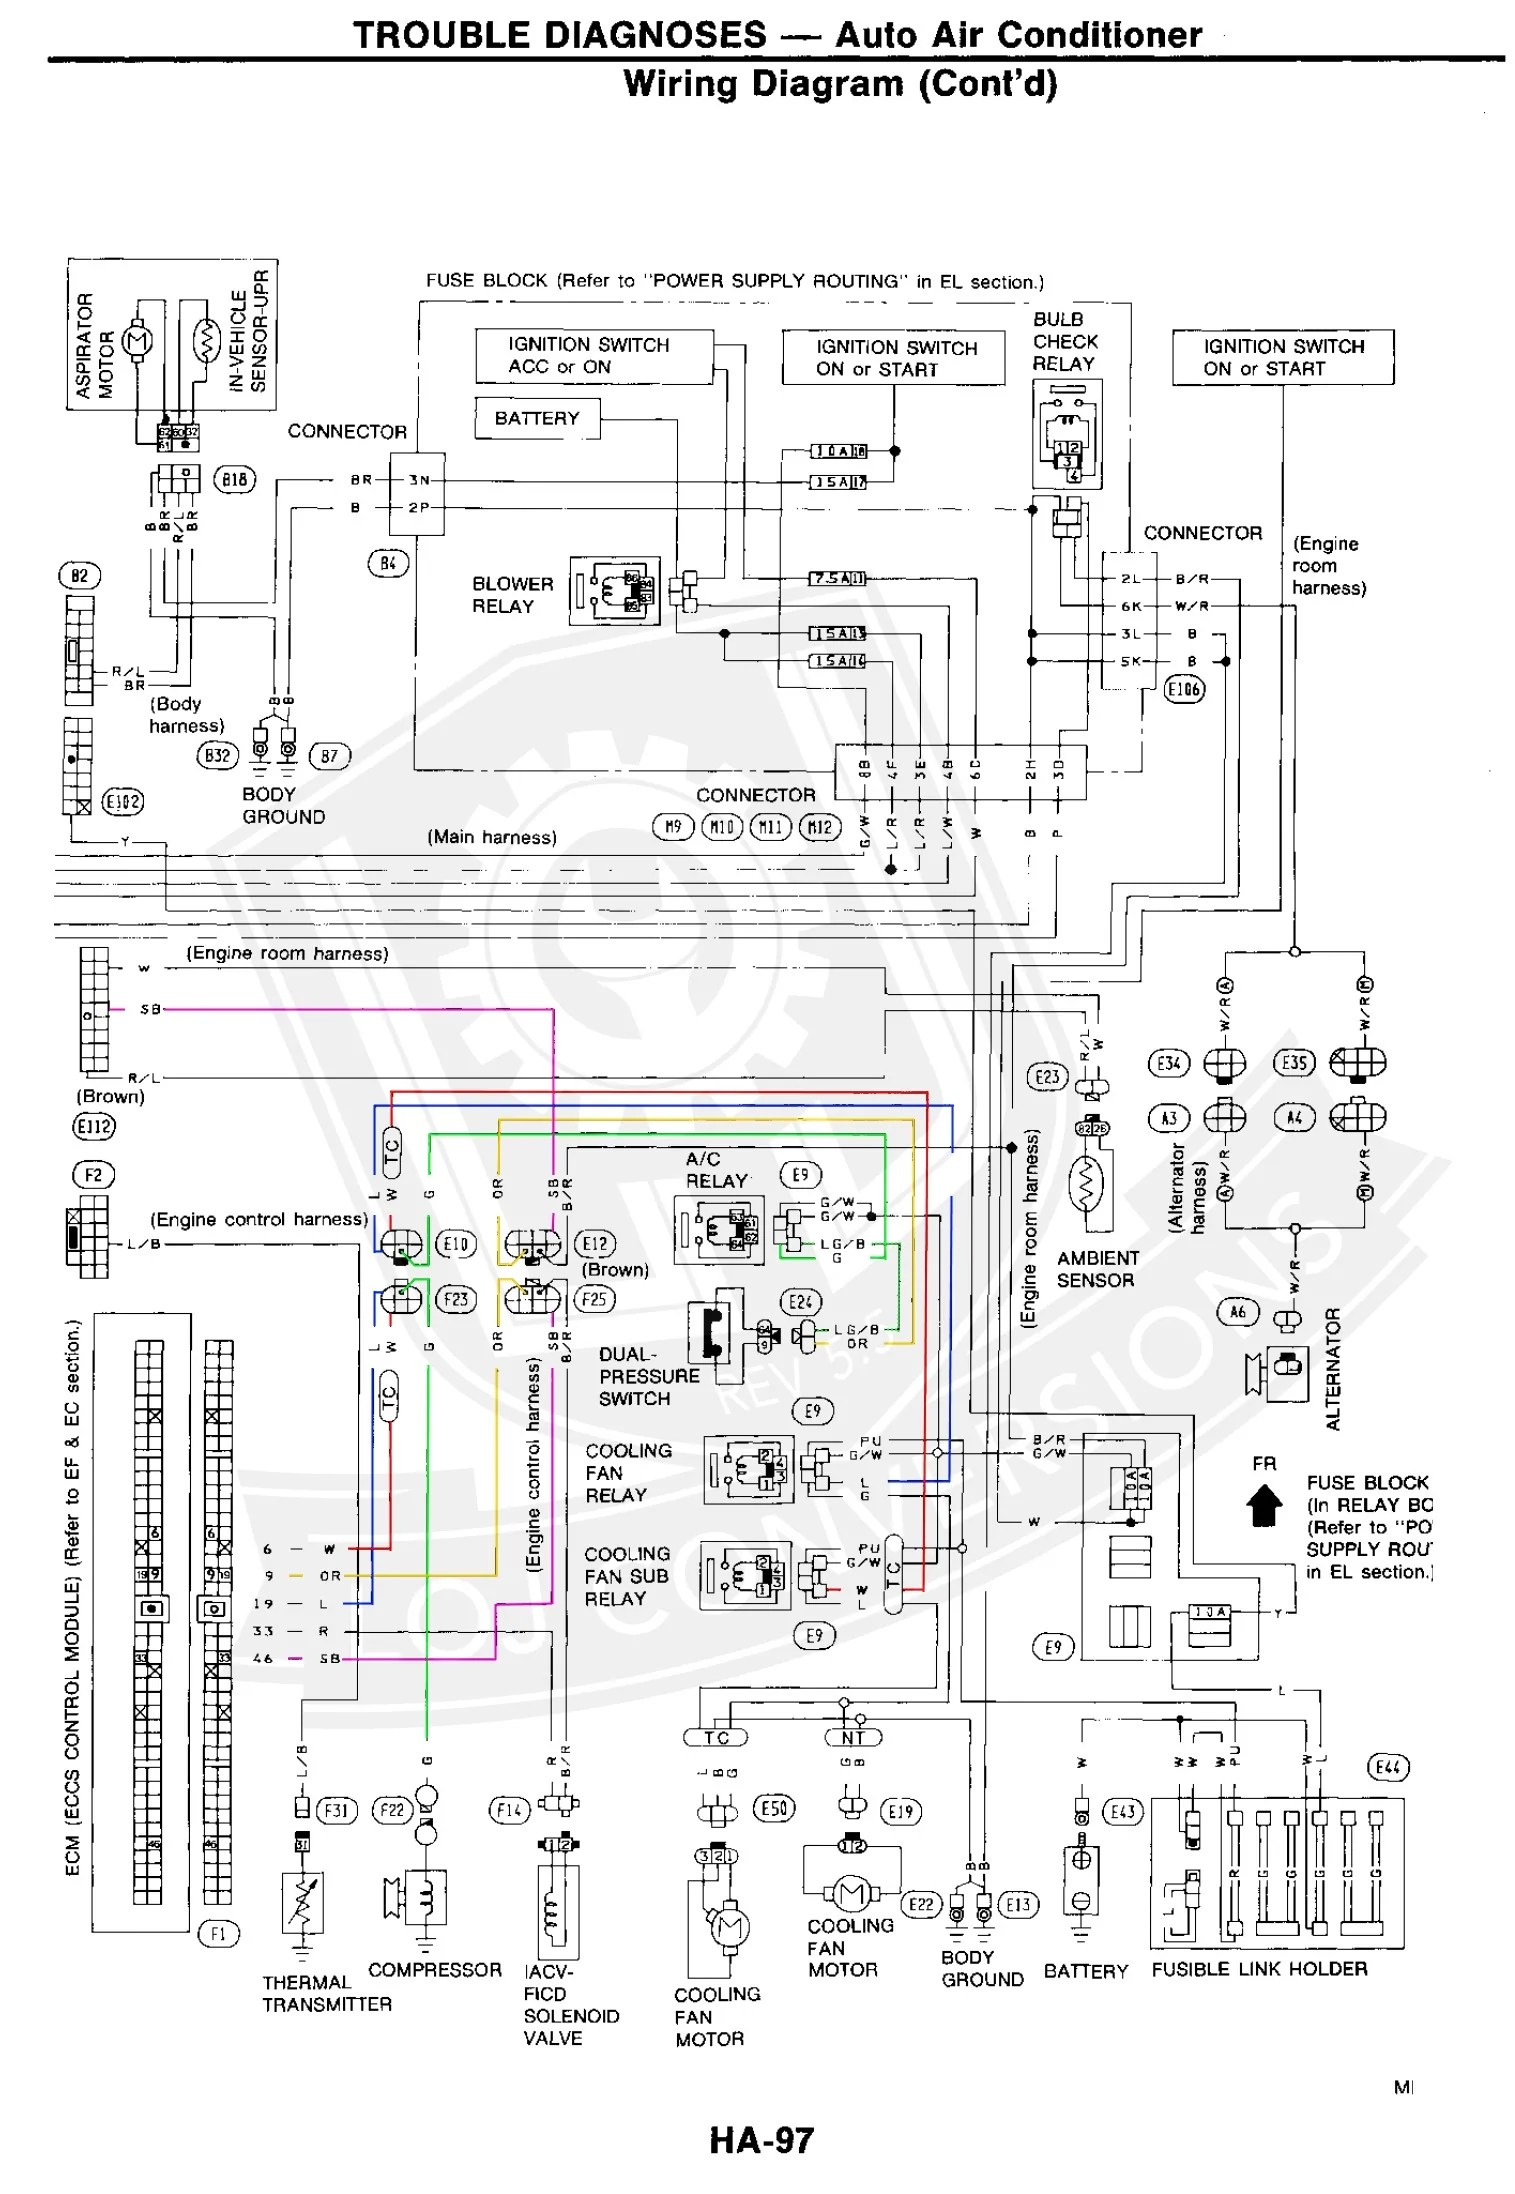 hight resolution of 1980 camaro wiring diagram wiring diagram centre 1980 camaro wiring diagram